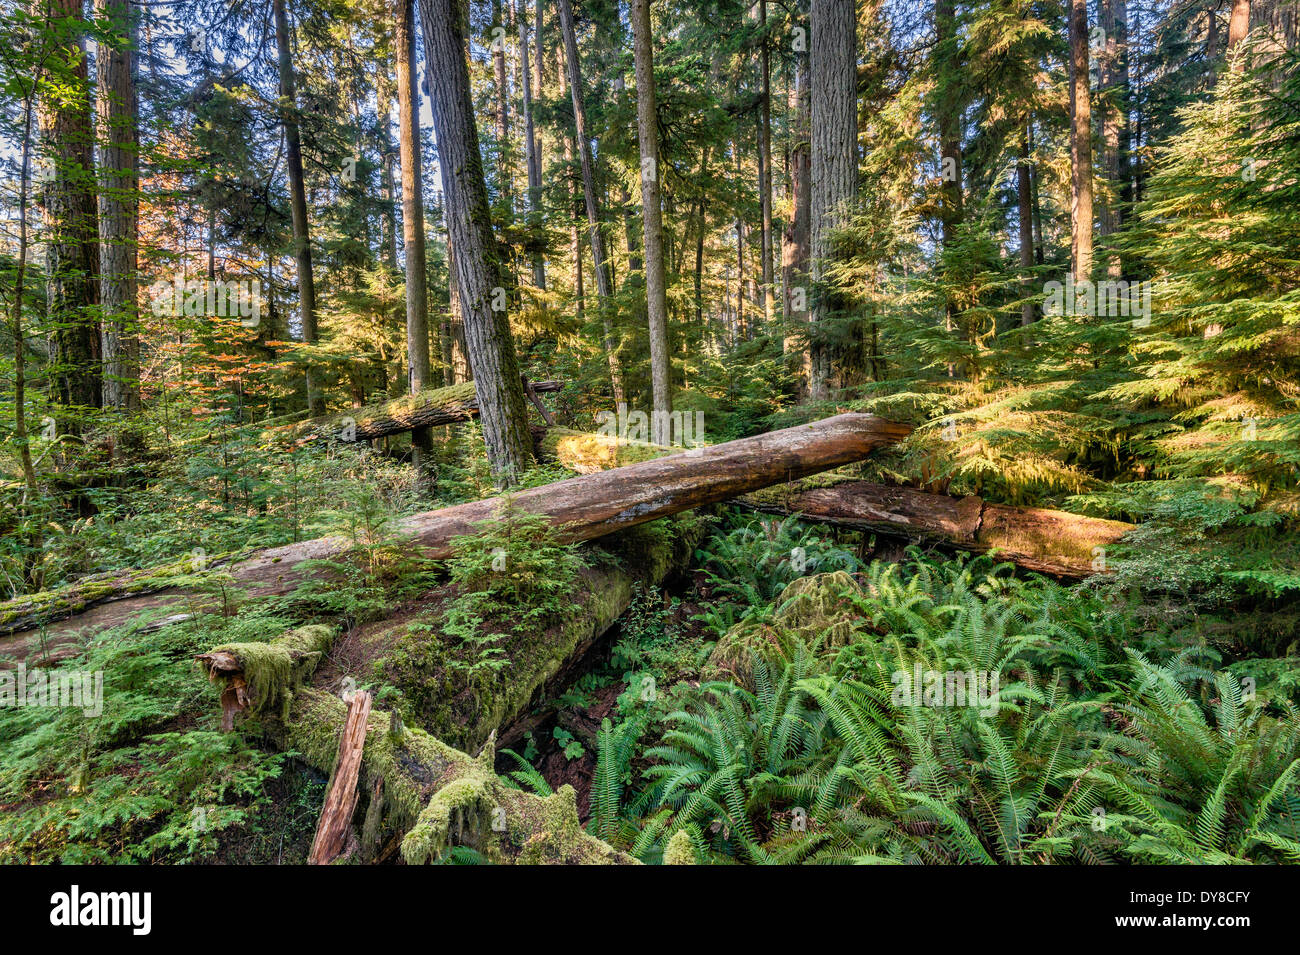 Douglas-fir trees, old-growth temperate rain forest, MacMillan Provincial Park, Vancouver Island, British Columbia, - Stock Image